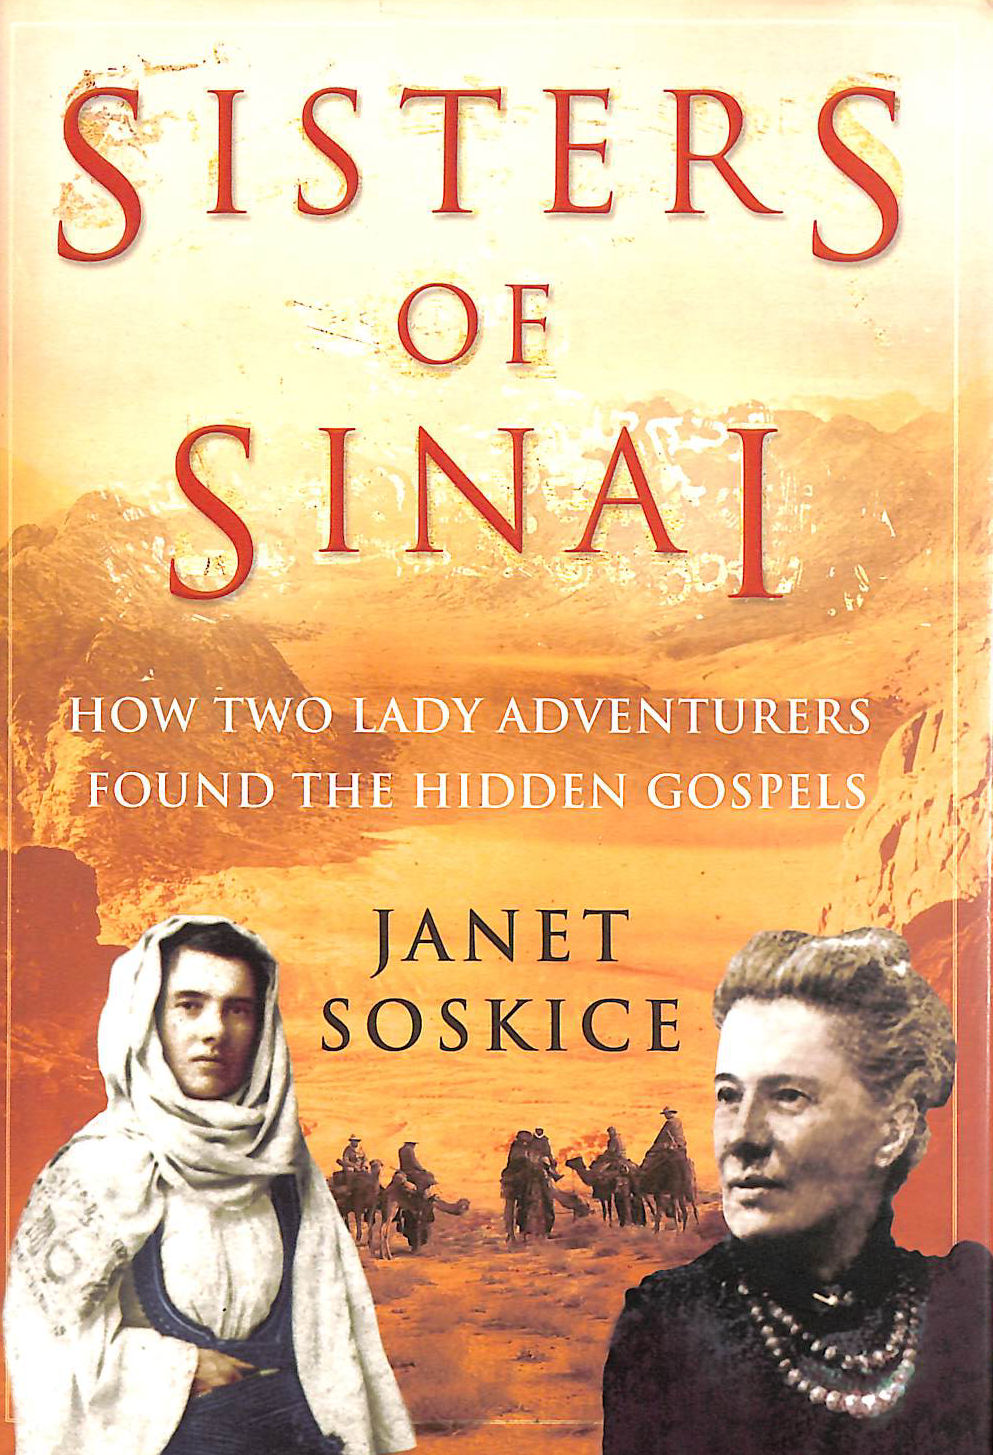 Image for Sisters Of Sinai: How Two Lady Adventurers Found the Hidden Gospels: How Two Lady Adventurers Unearthed the Hidden Gospels